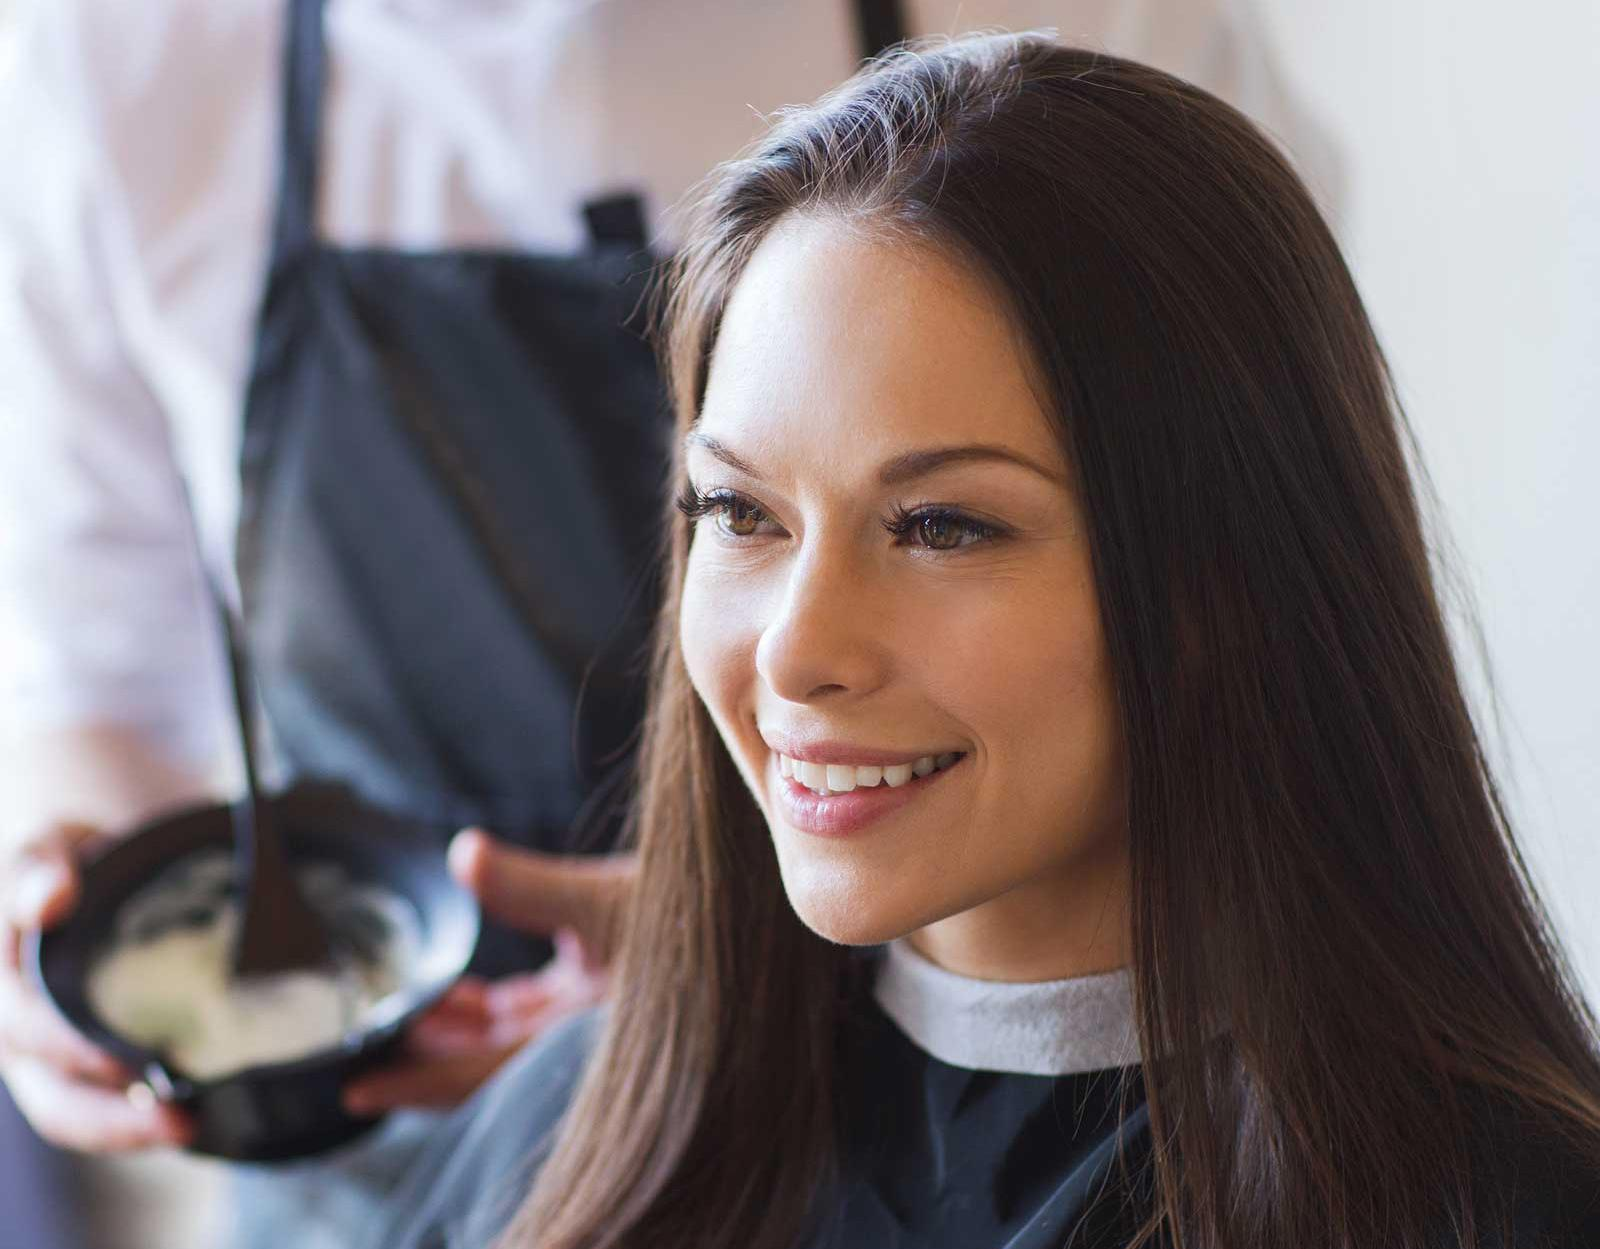 10 Things Hair Colorists Want You to Know